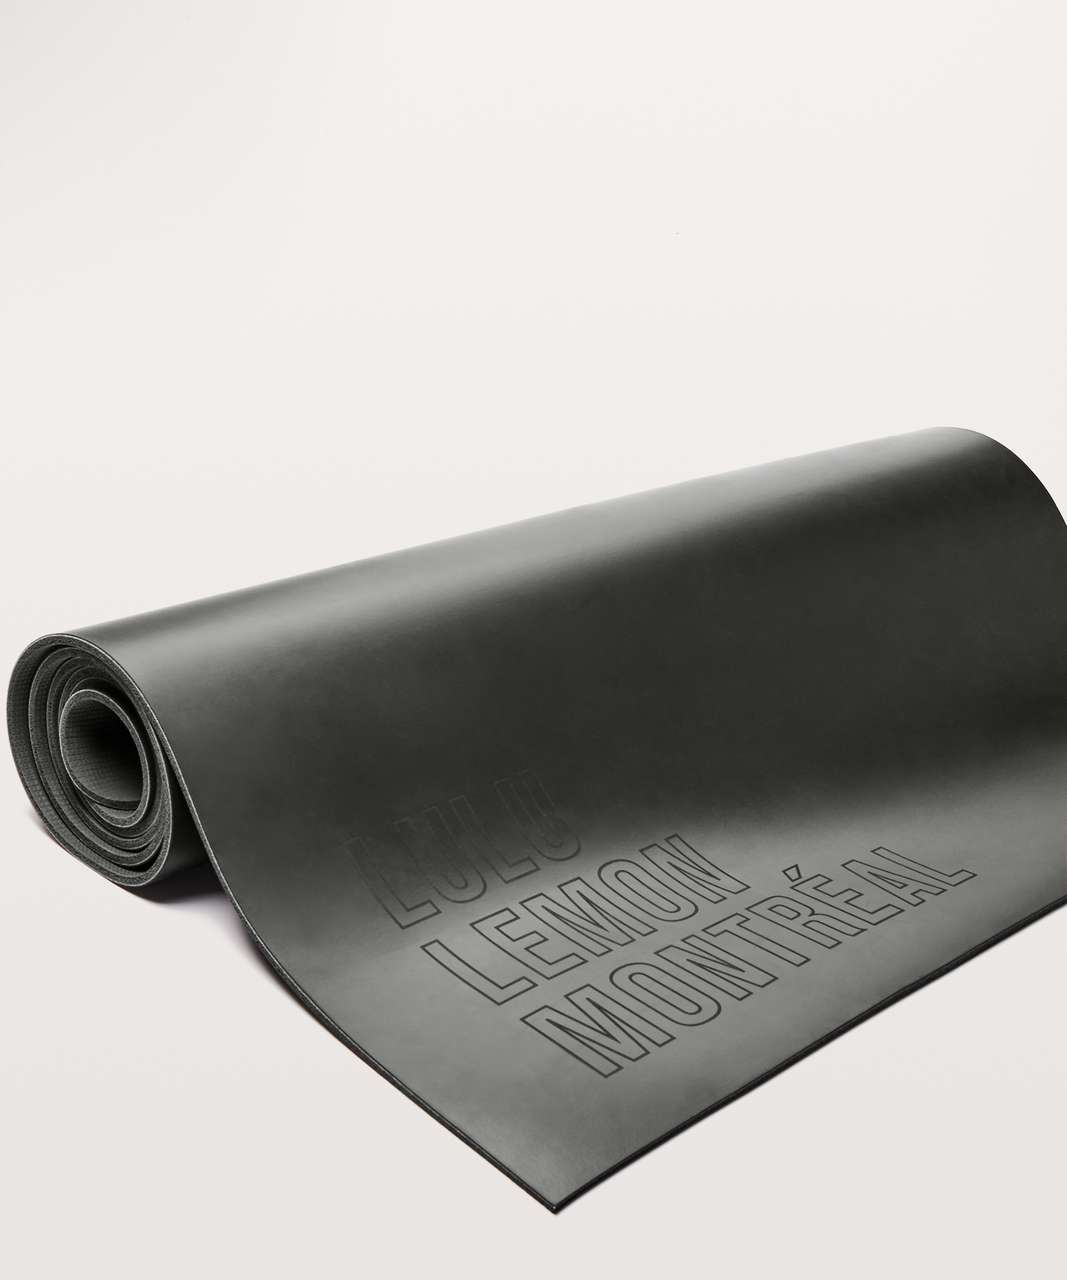 6bc9c1059a Lululemon The Reversible Mat 5mm Montreal - My City Mat Montreal - lulu  fanatics